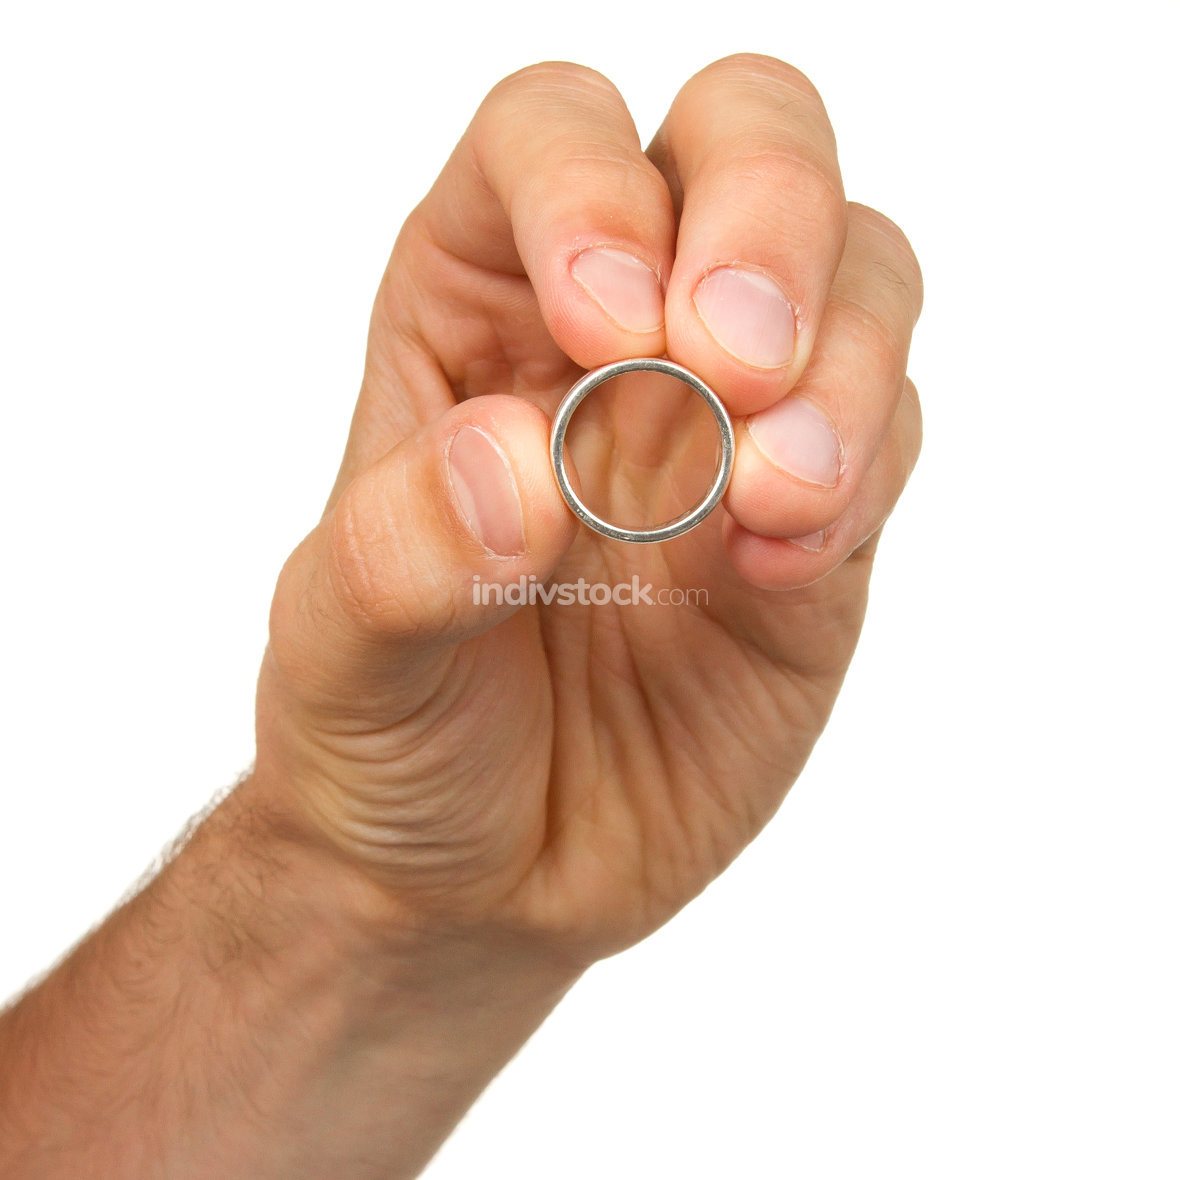 Man holding a silver ring